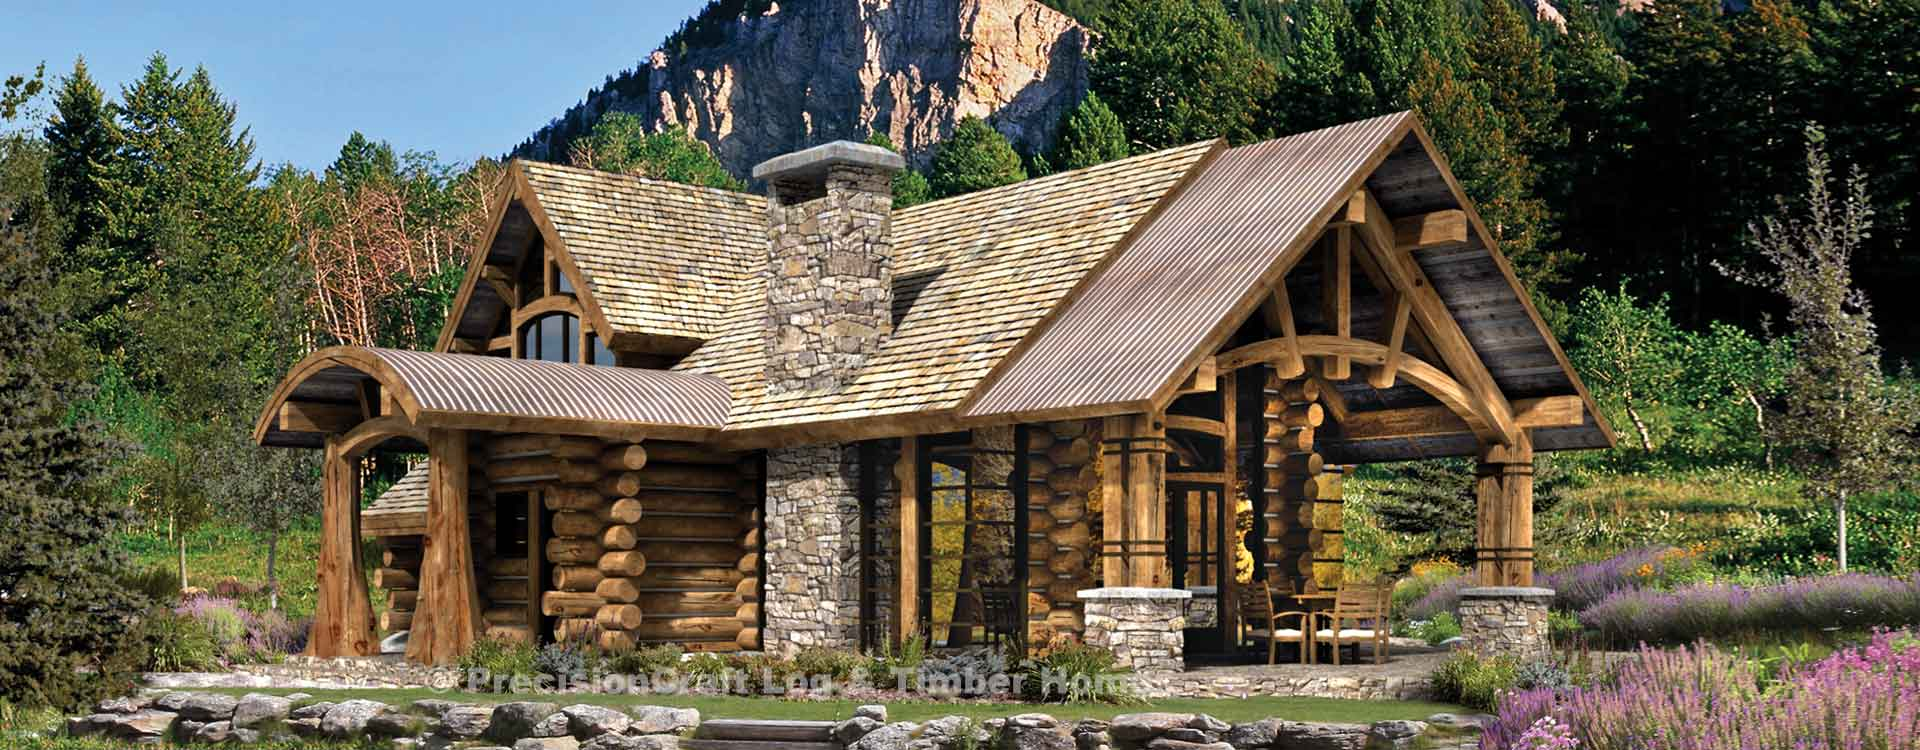 Upland Retreat | Luxury Log Home Plan